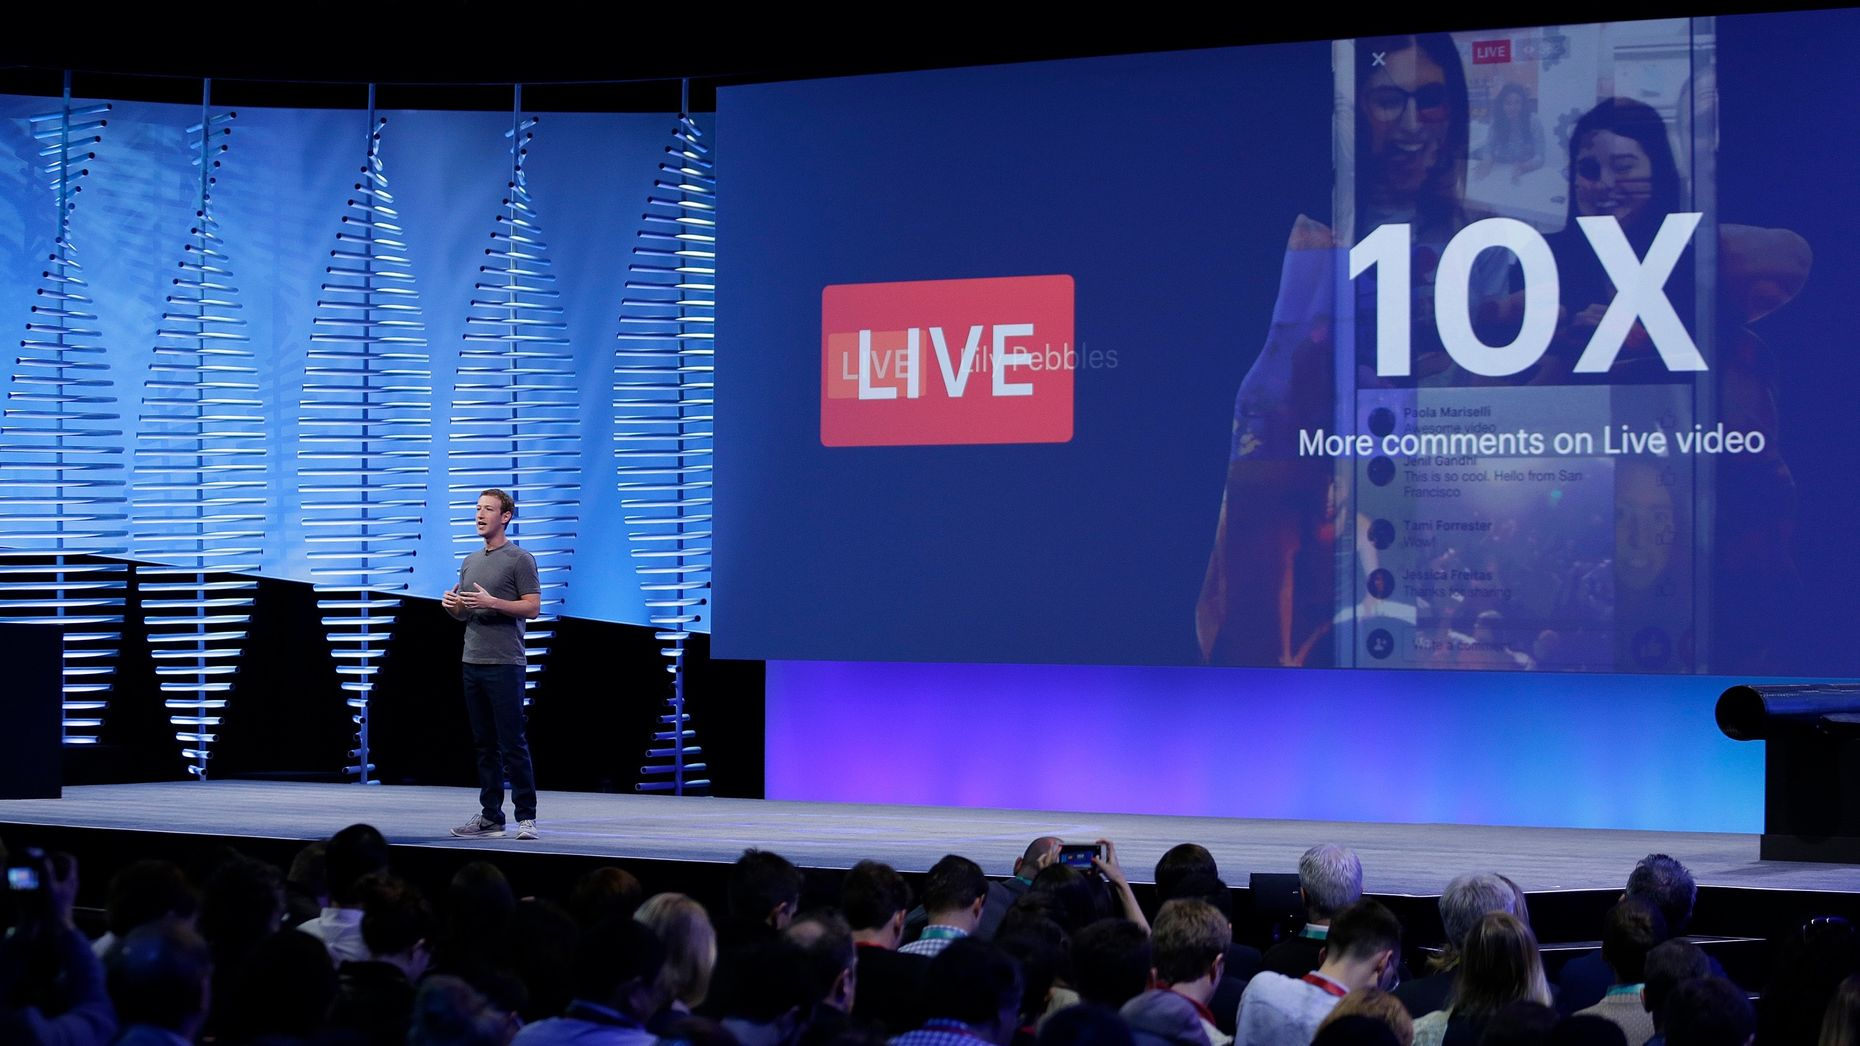 Facebook CEO Mark Zuckerberg talking about Facebook's plans for live video at its F8 developer conference in April. Photo by AP.